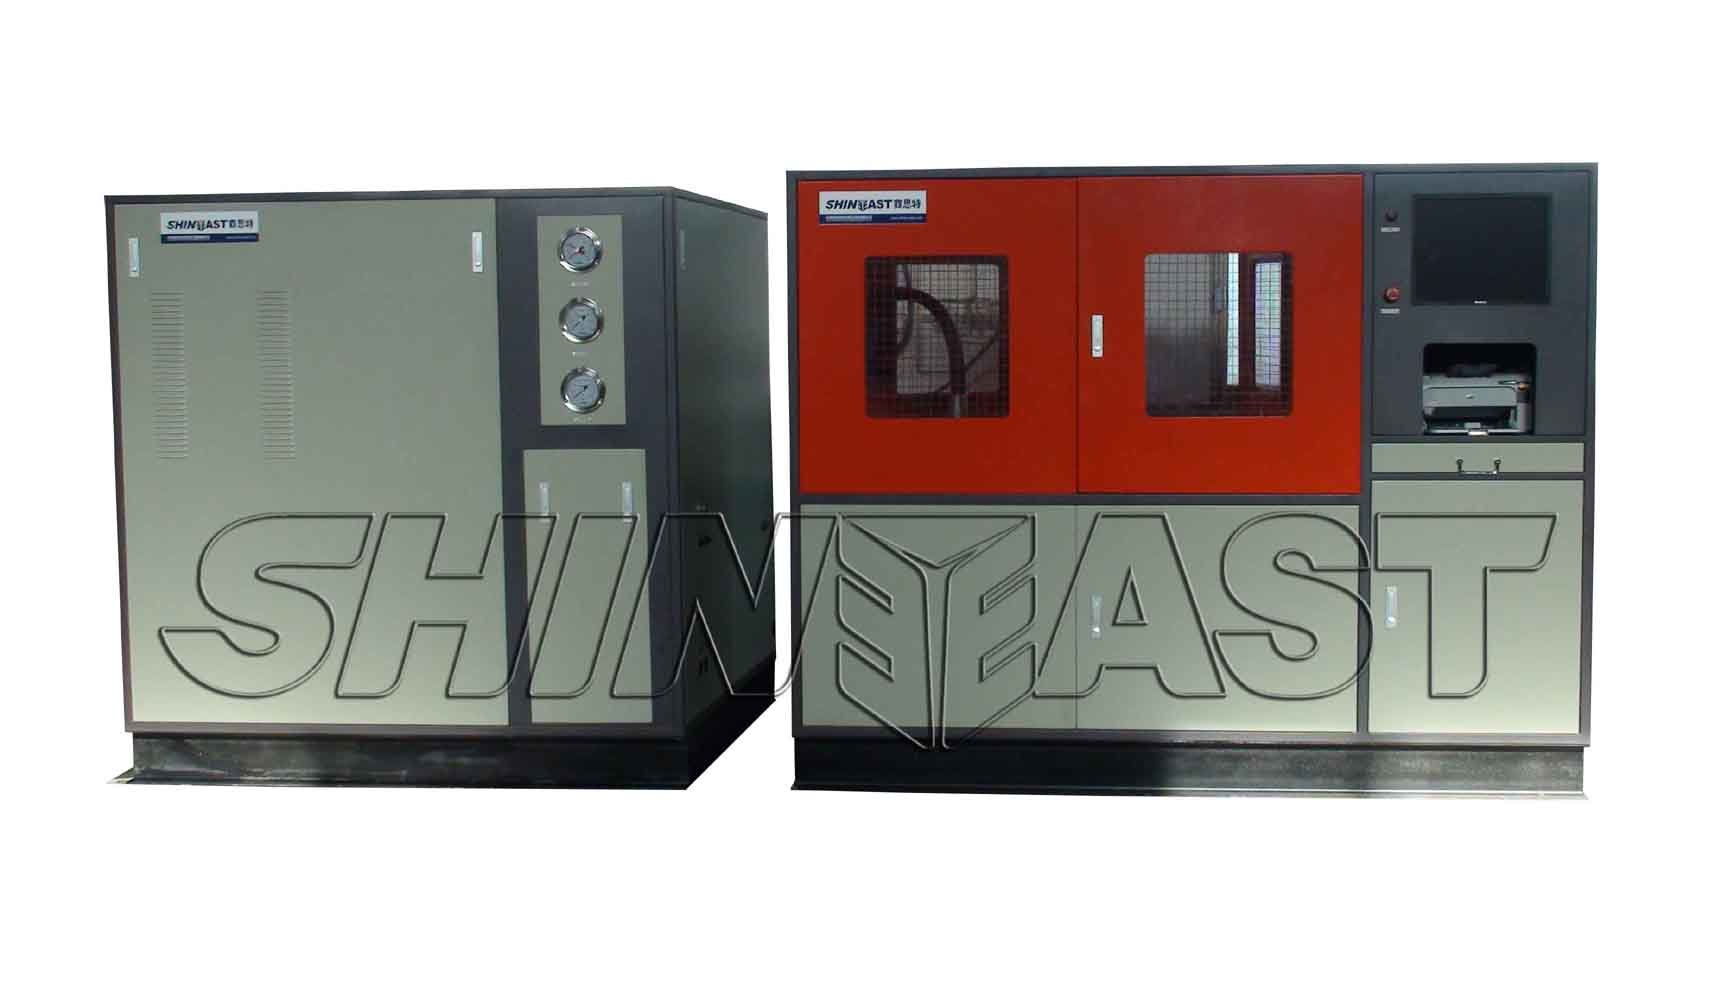 Impulse Pressure Test Bench (SPT80)